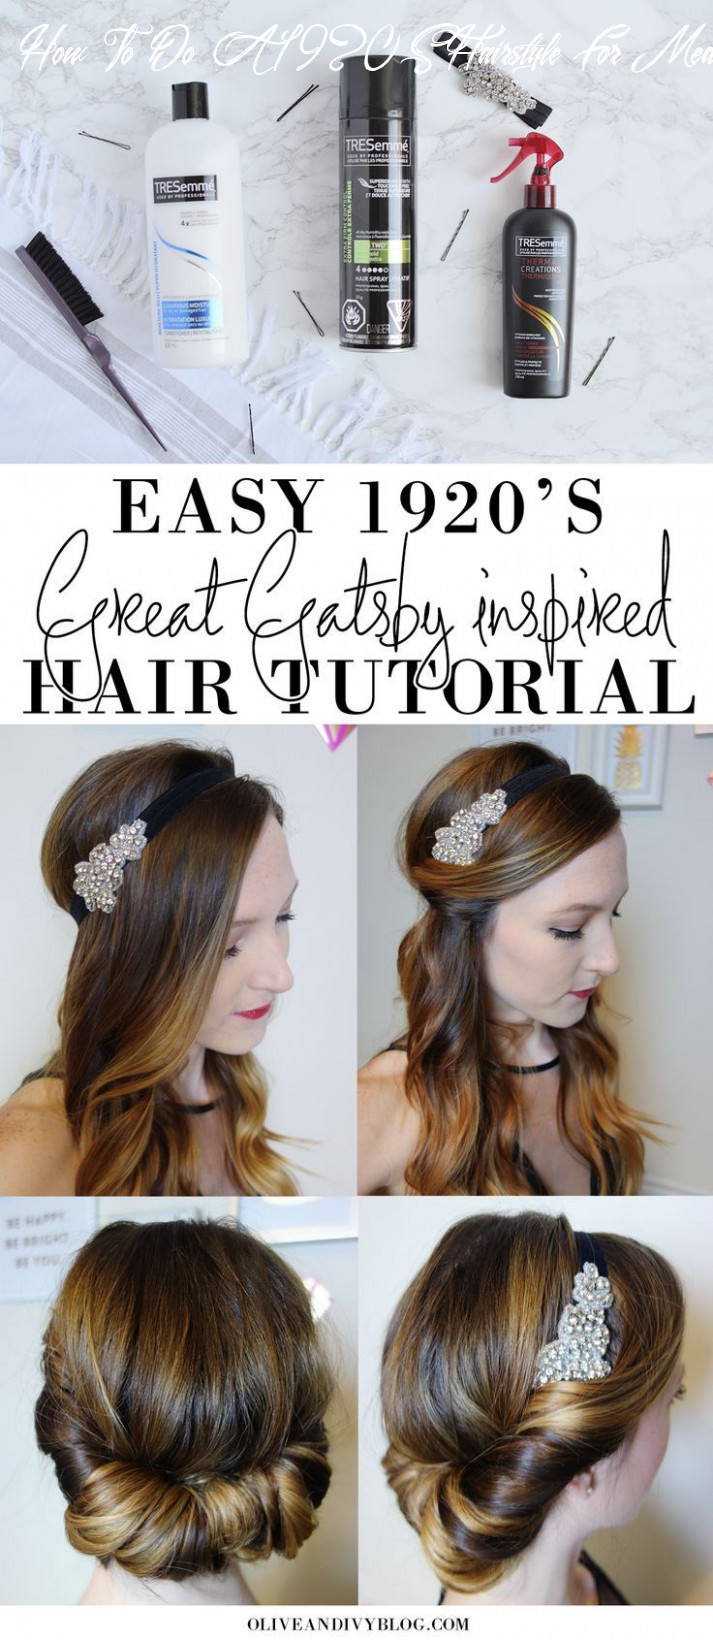 12s hairstyles for medium hair | great gatsby hairstyles, gatsby